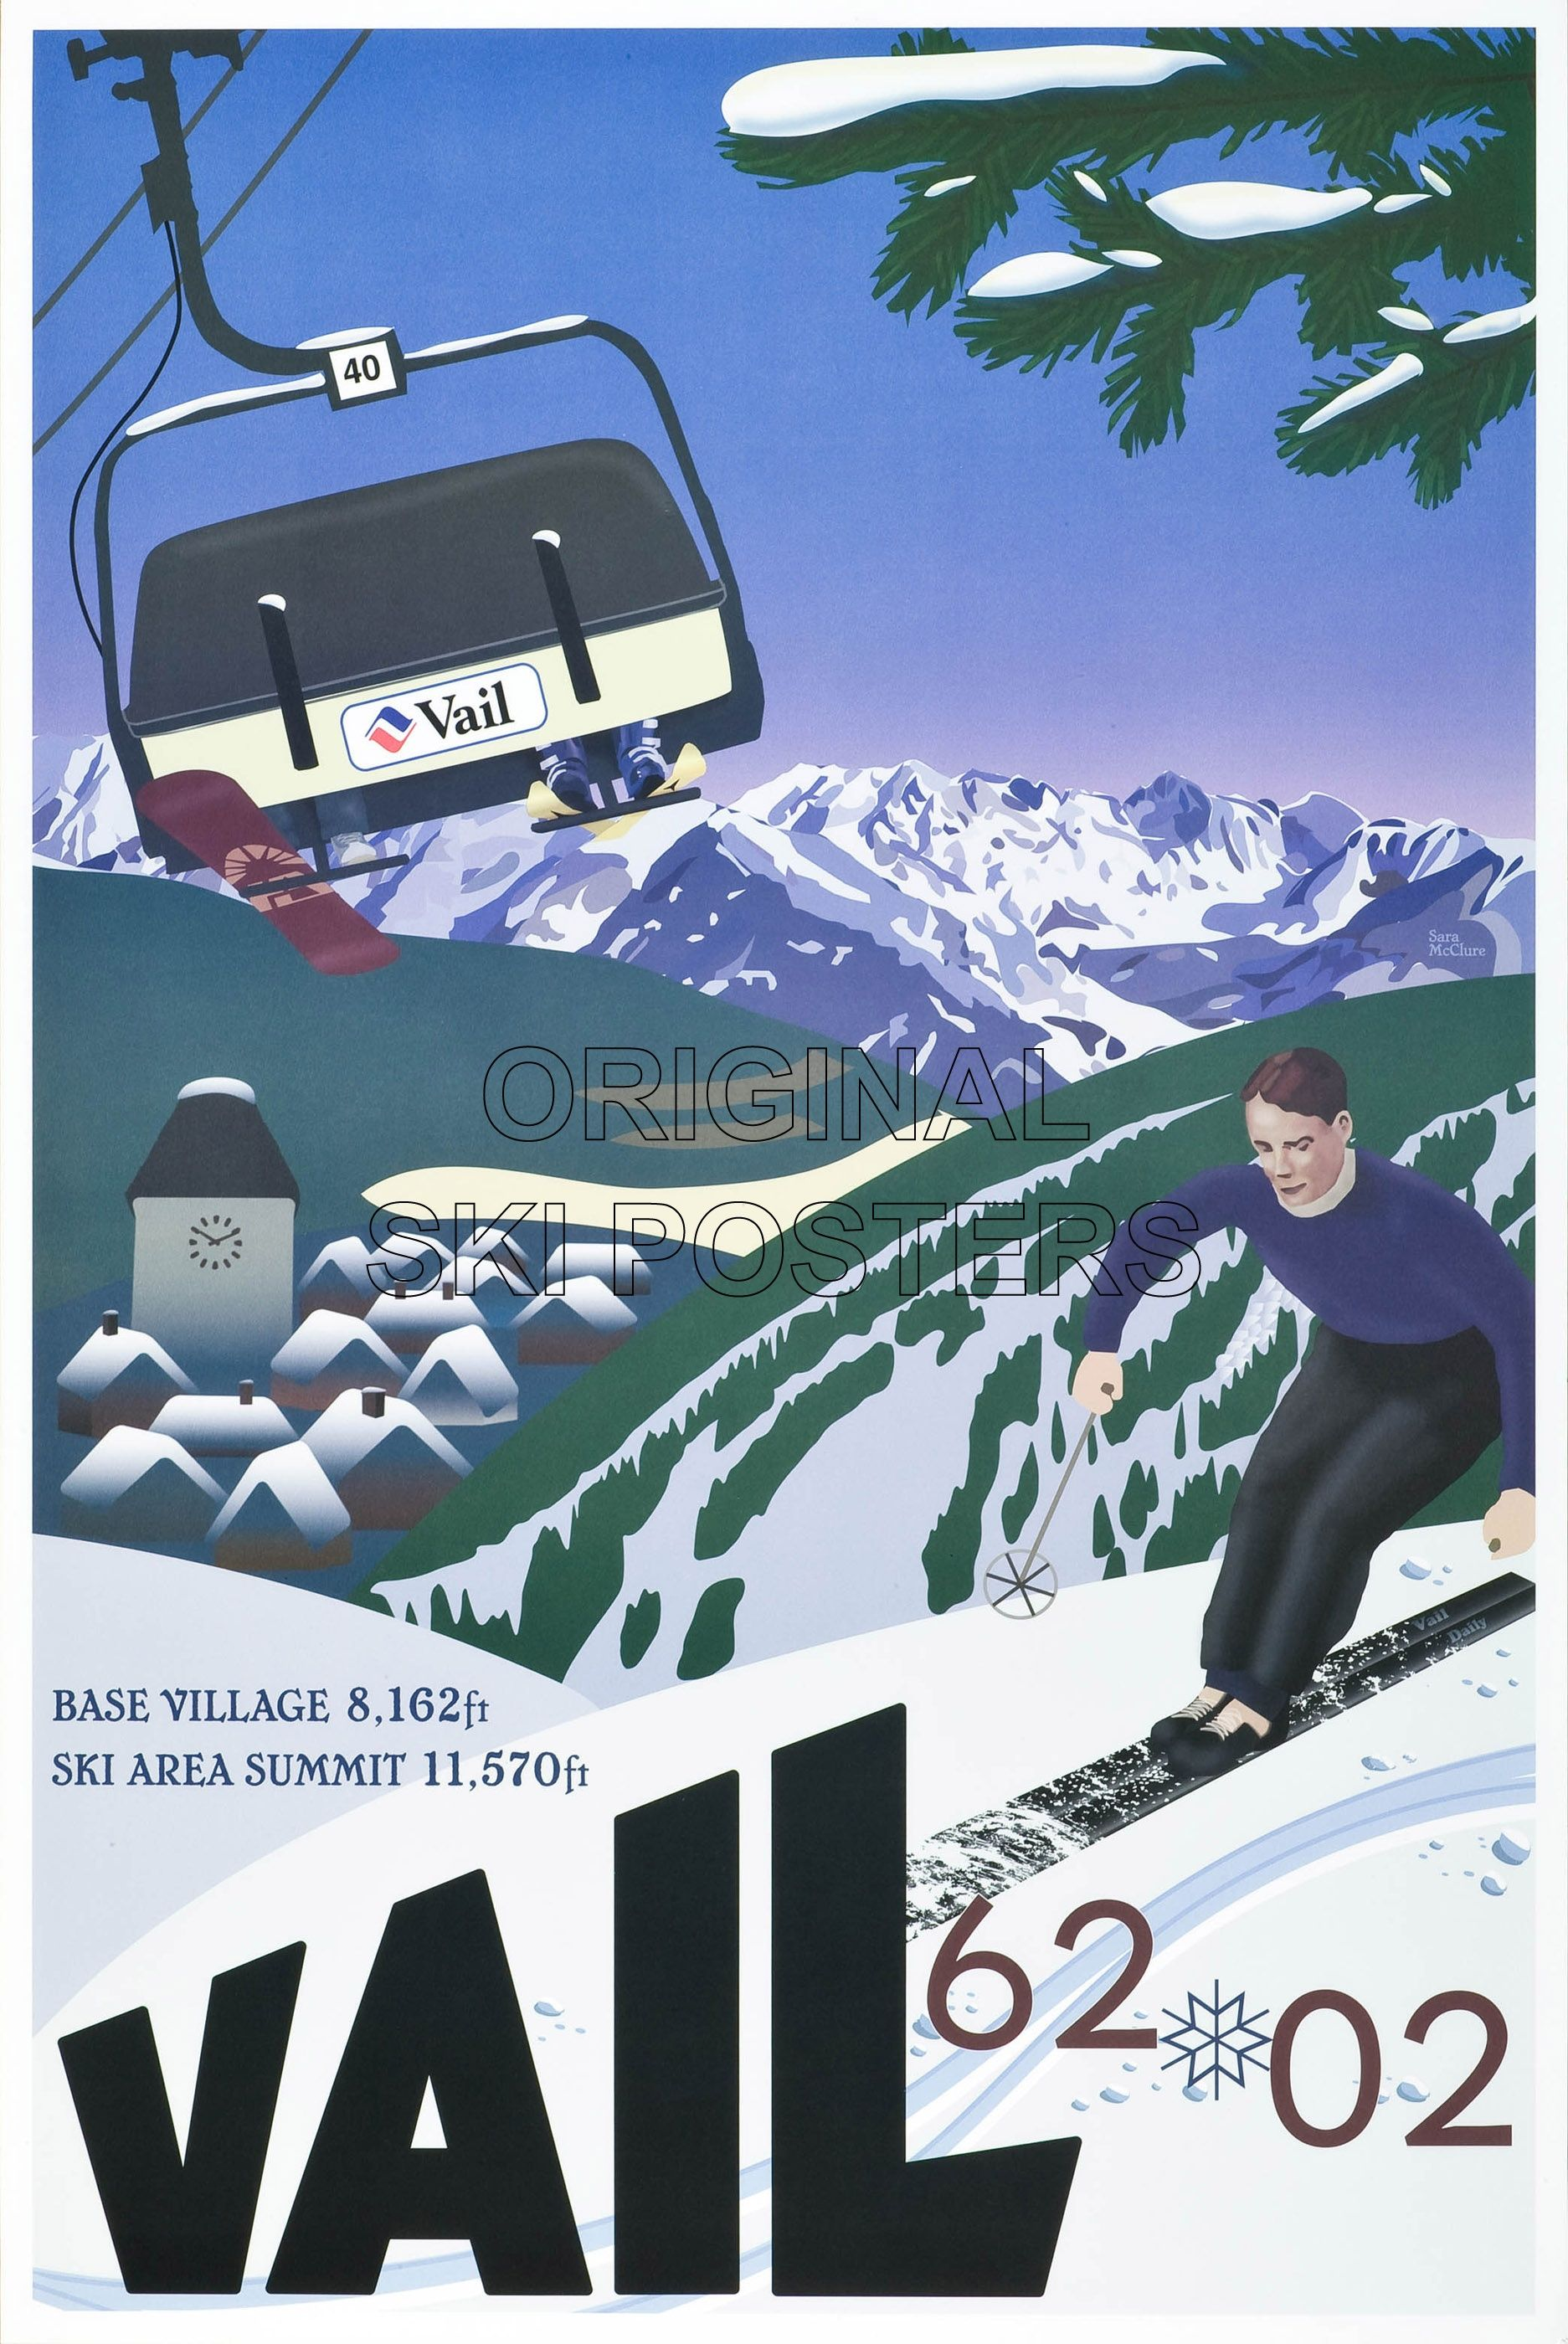 skiing posters - Buscar con Google